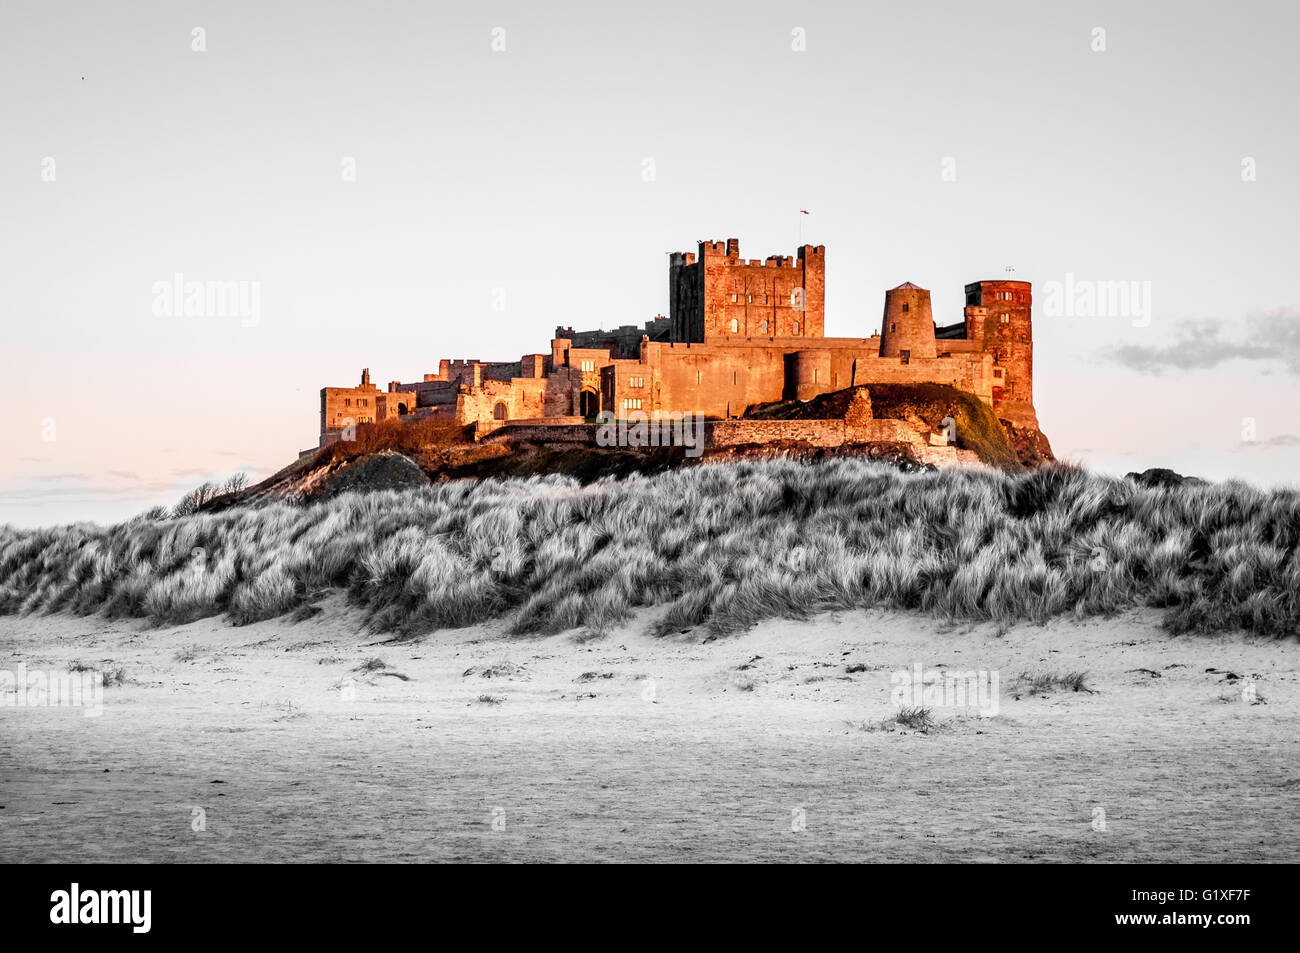 The Colourful Bamburgh Castle Stock Photo